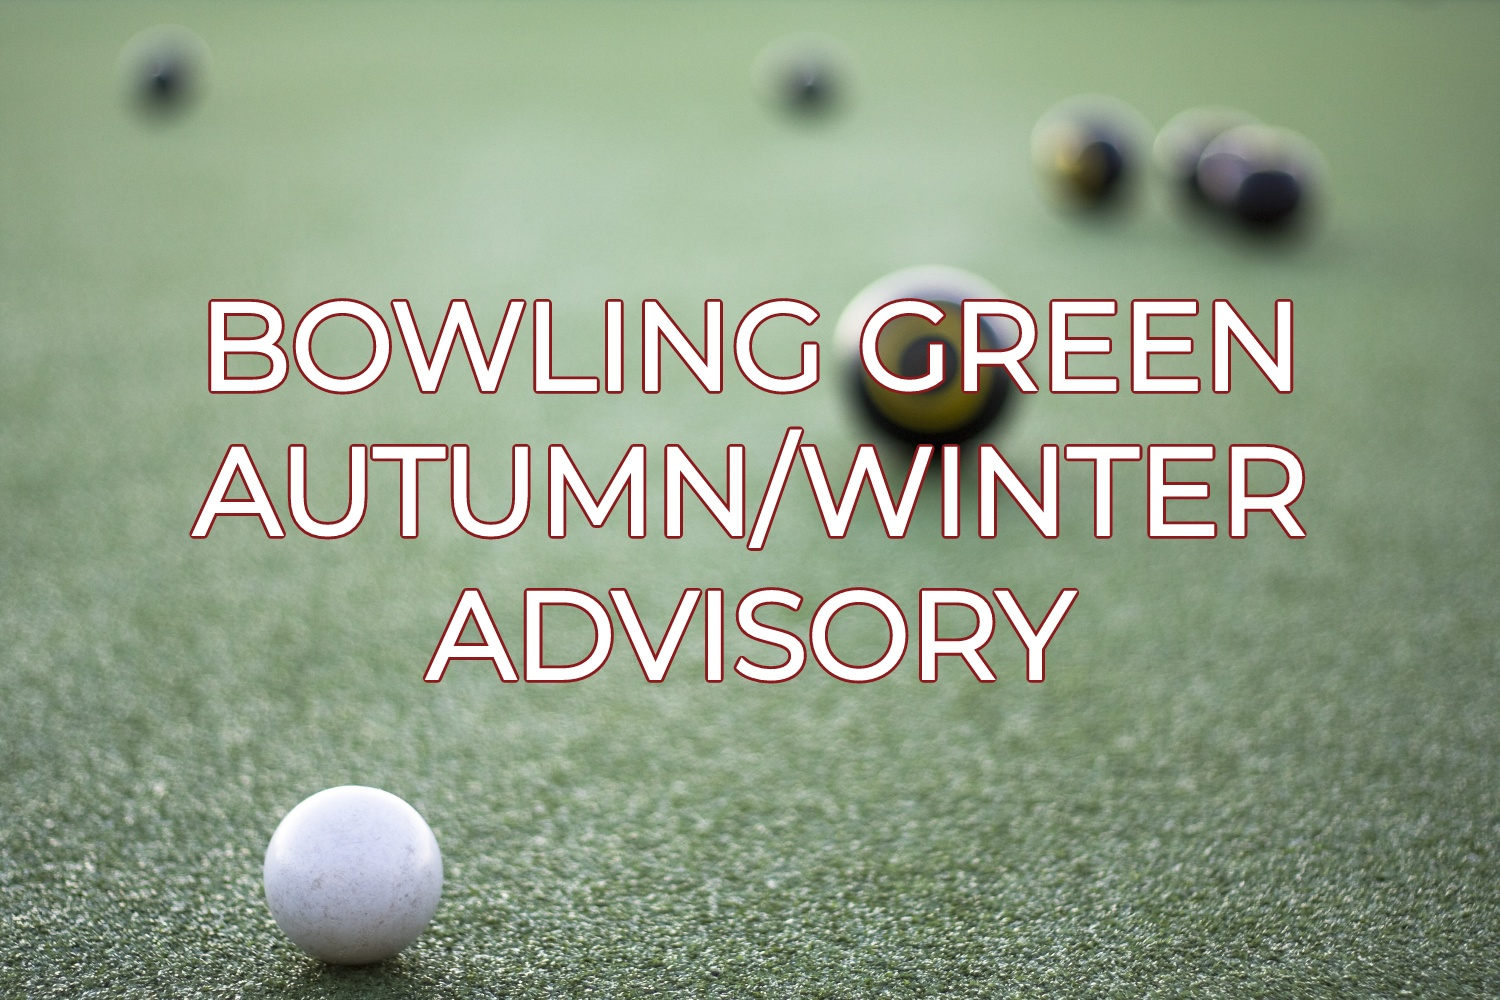 Bowling Green Autumn/Winter Advisory